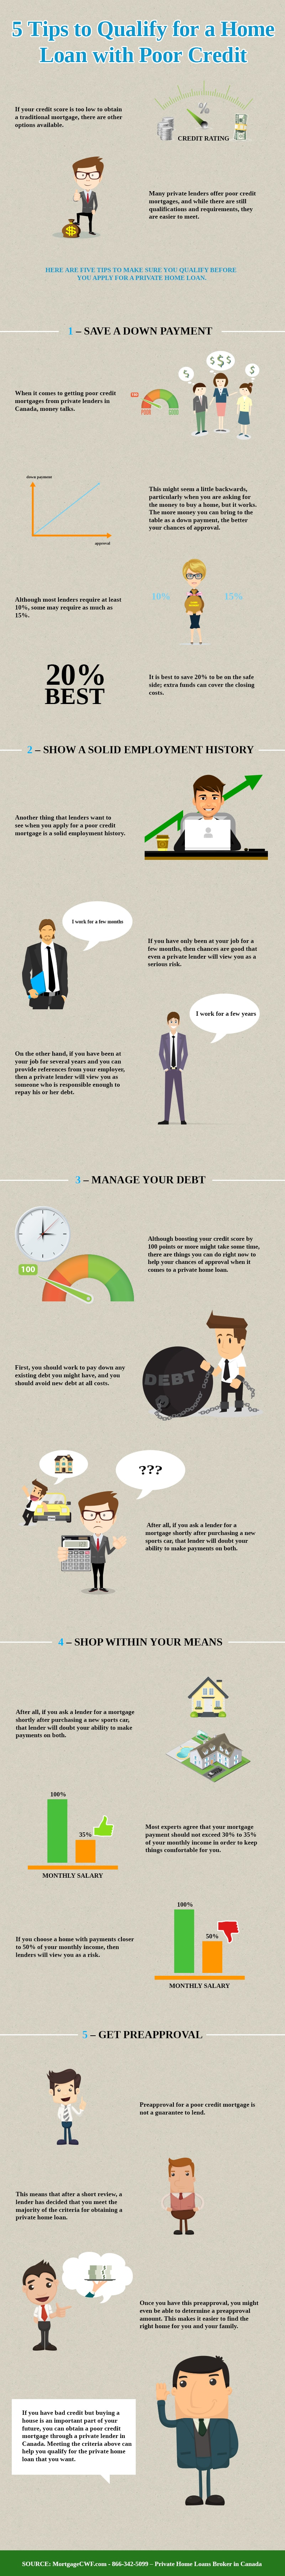 5 Tips to Qualify for a Home Loan with Poor Credit - Infographic